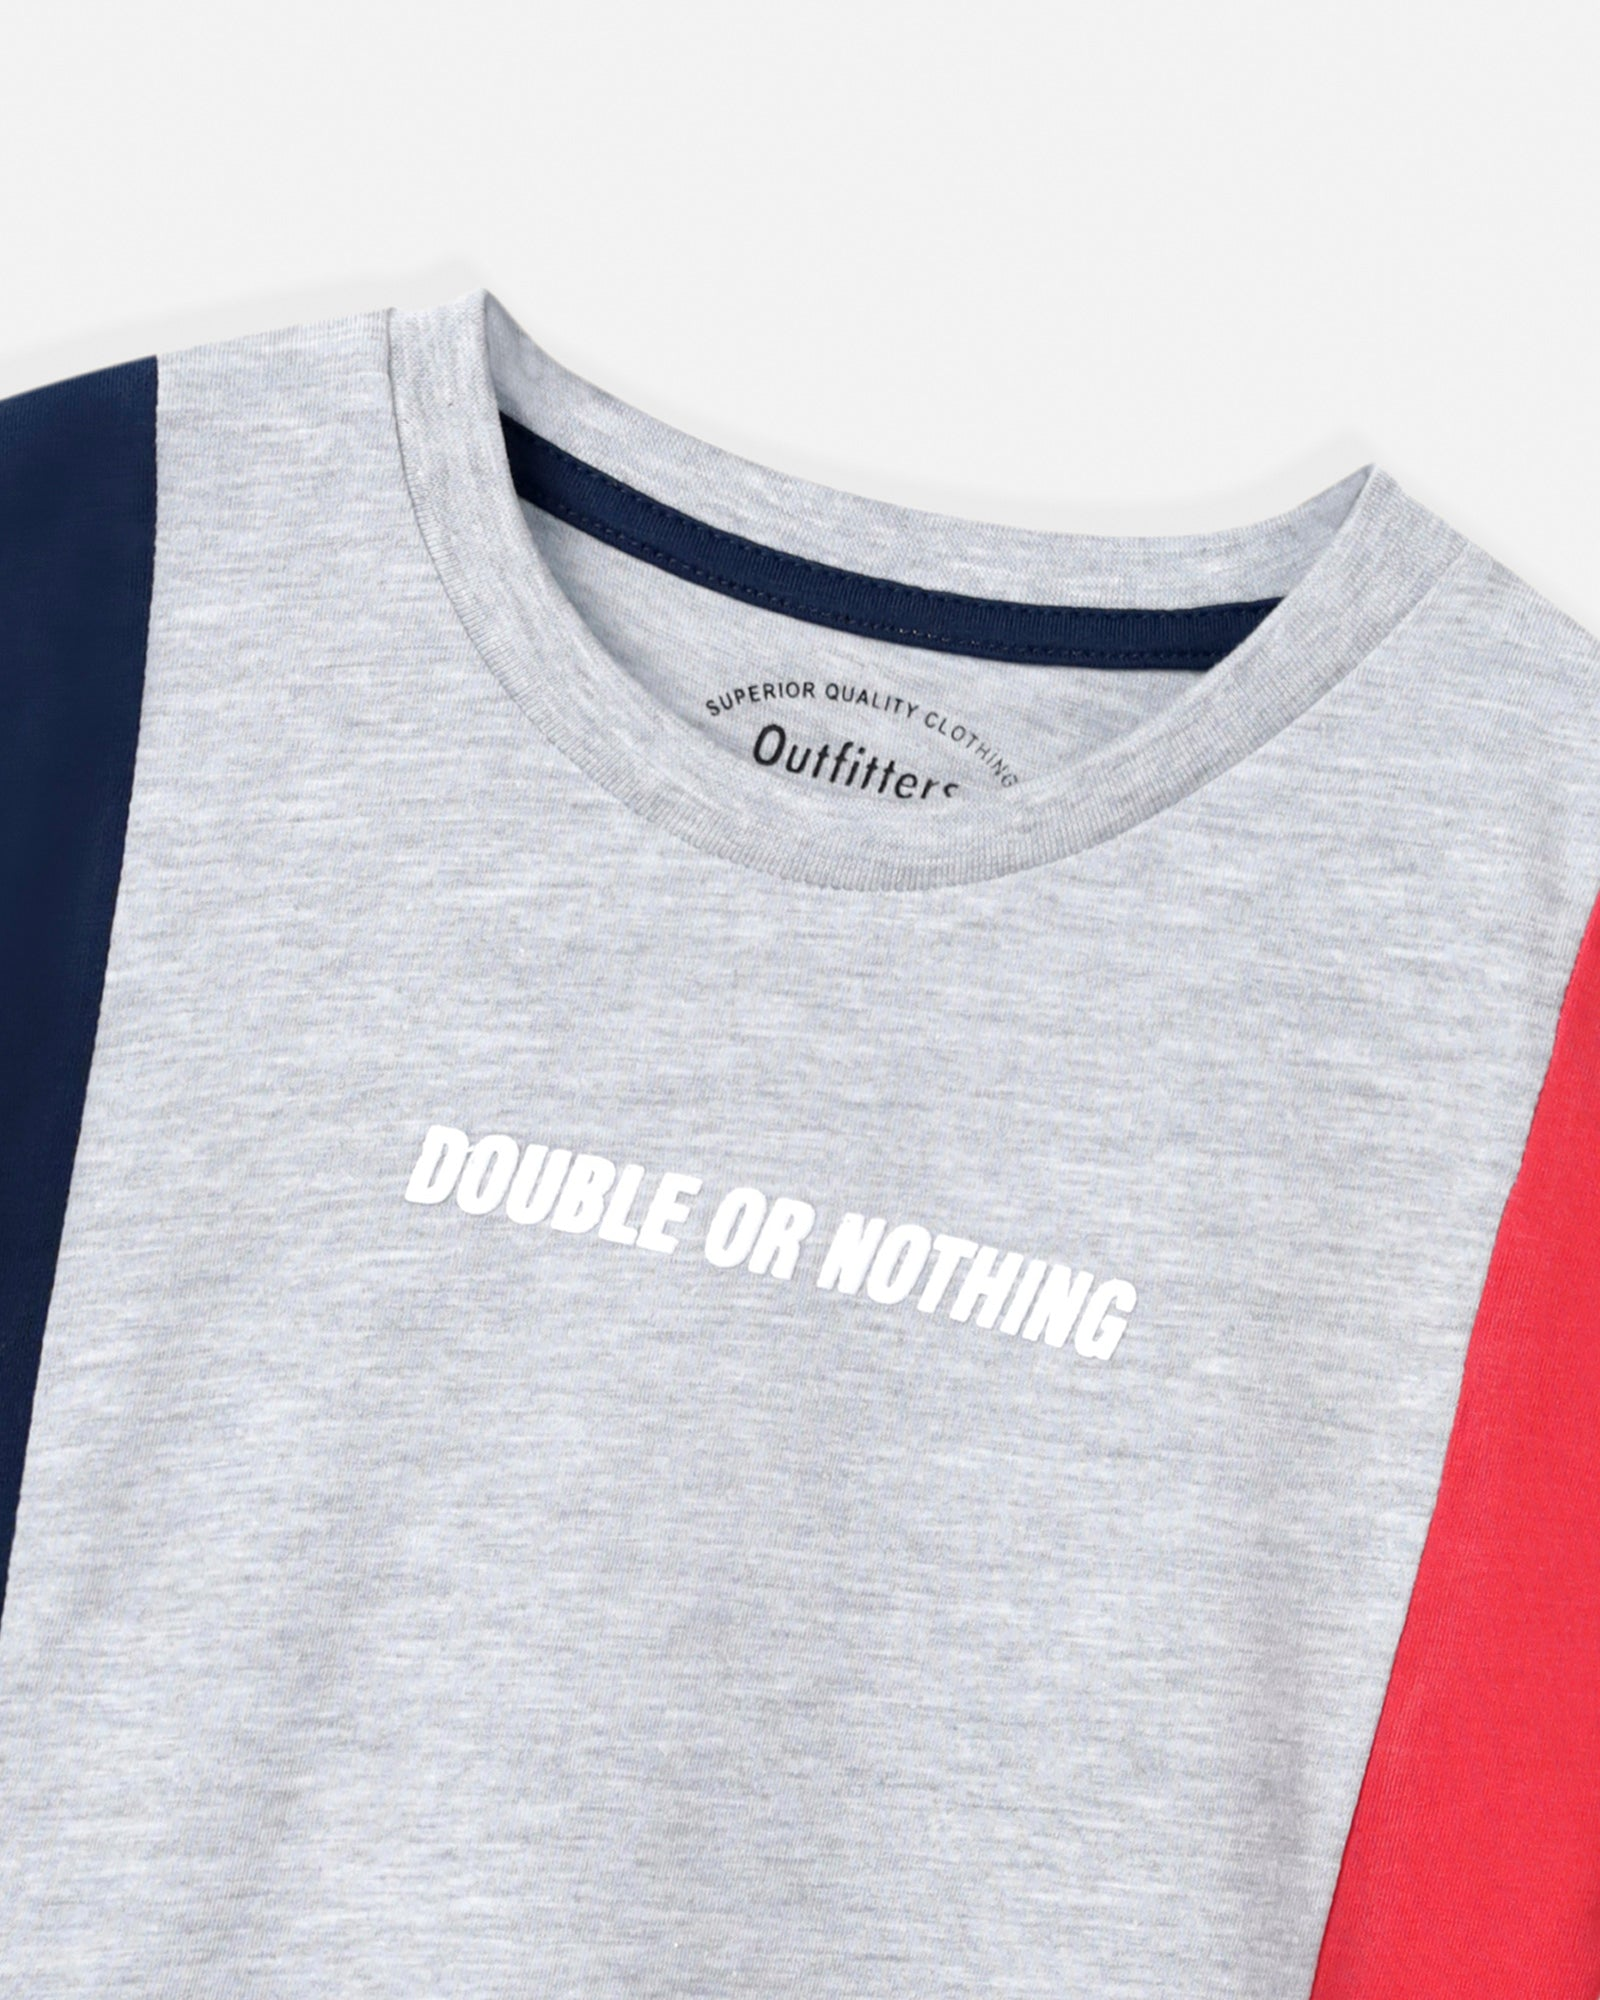 Double Or Nothing' Graphic T-Shirt